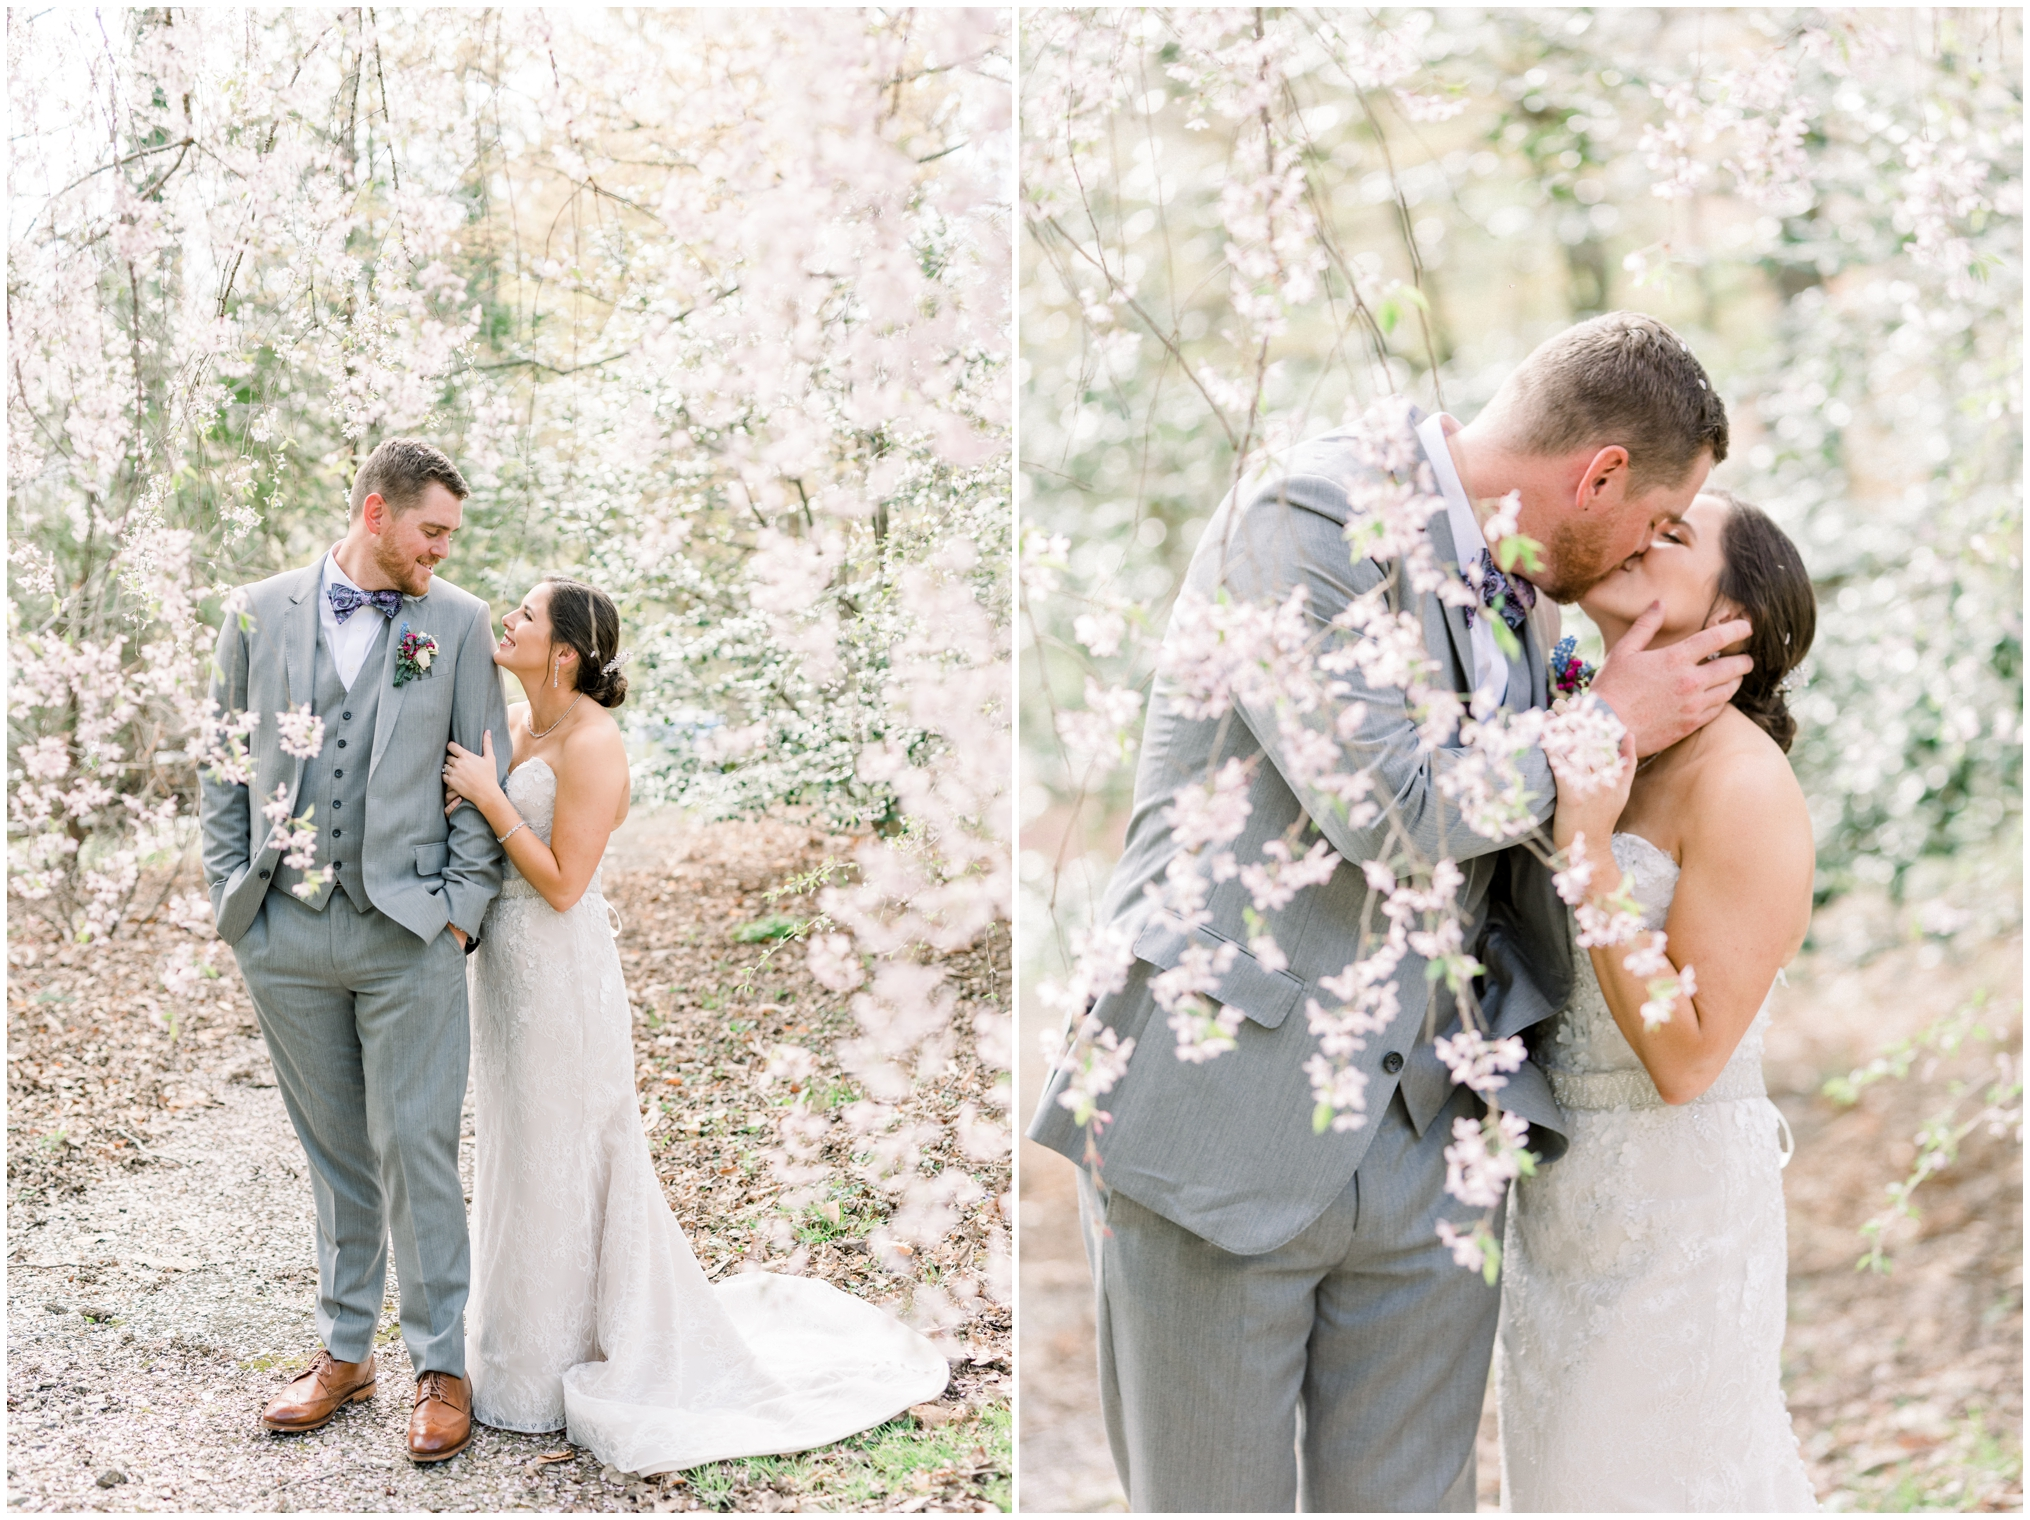 Krista Brackin Photography | April Wedding at The Carriage House at Rockwood Park_0071.jpg